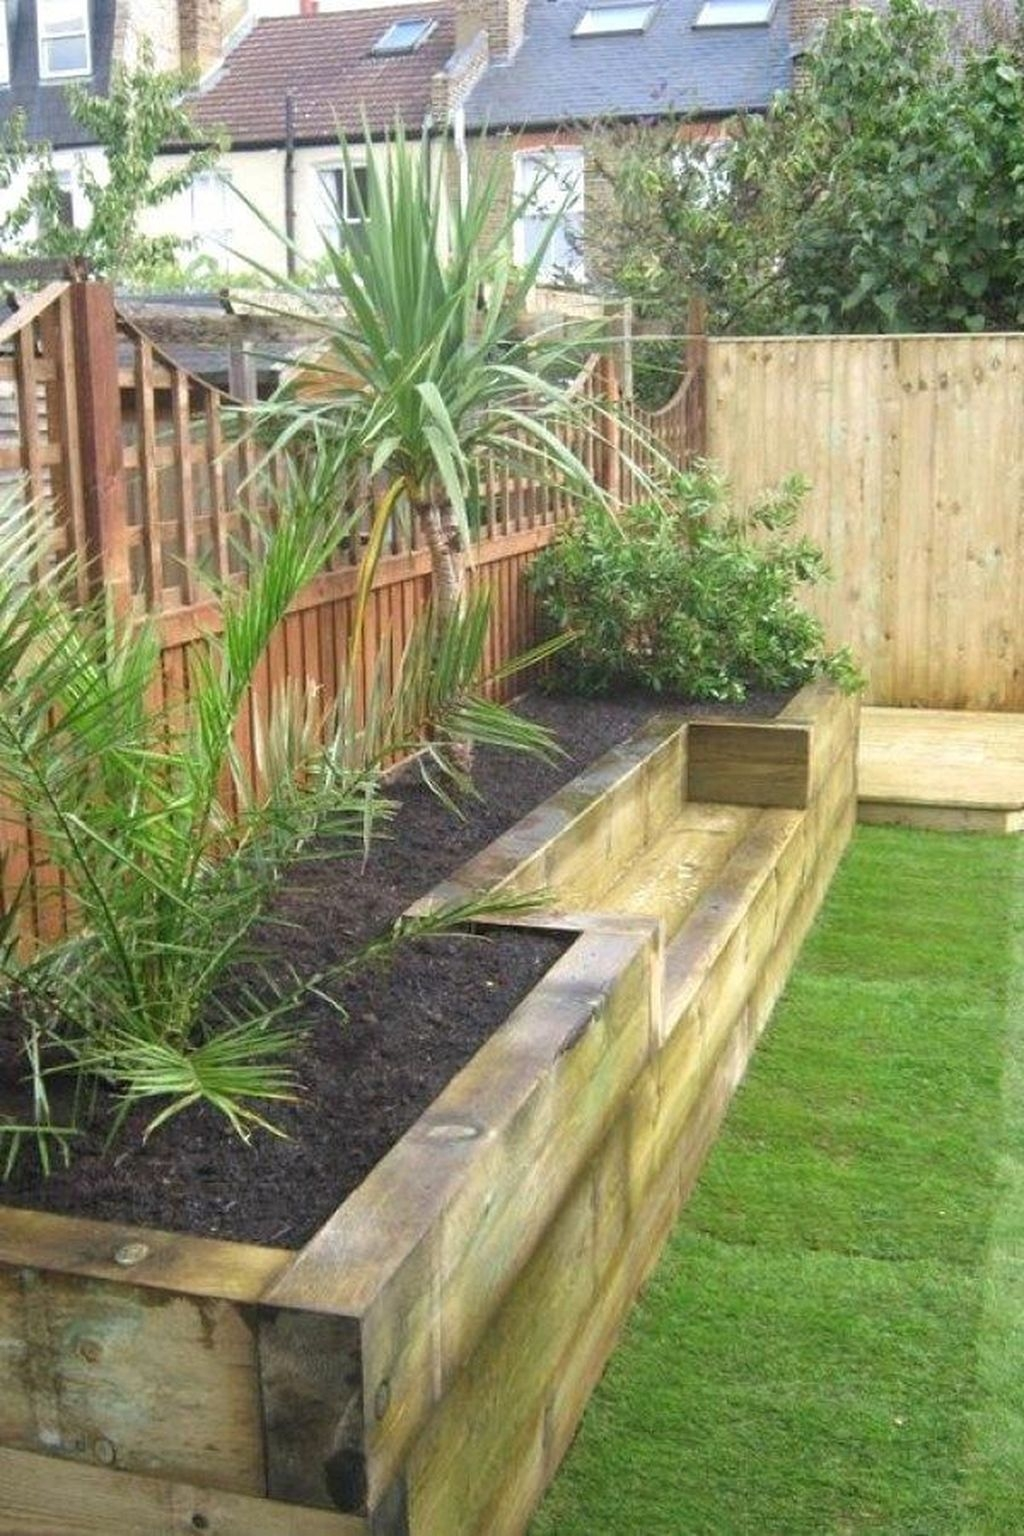 Fancy Diy Flower Beds Ideas For Your Garden05